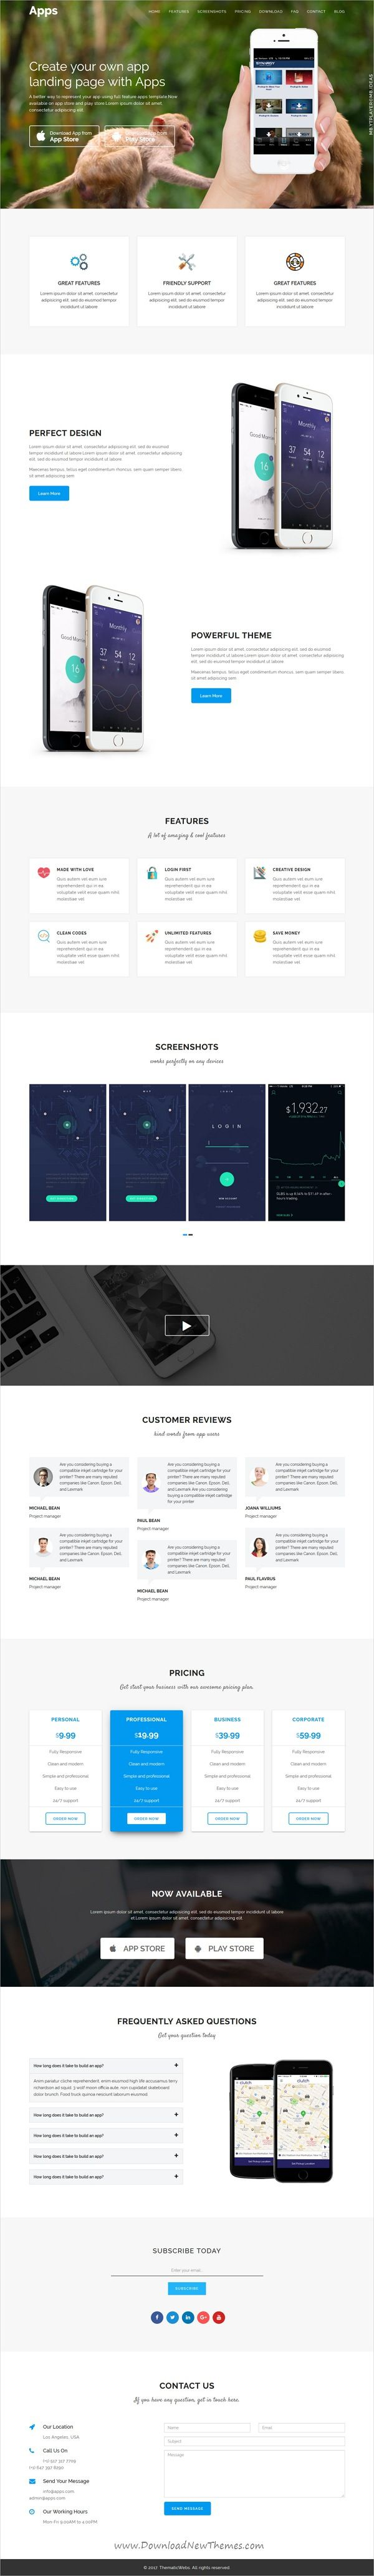 APPS is clean and modern design 2in1 responsive WordPress theme for #onepage app #landingpage website download now..